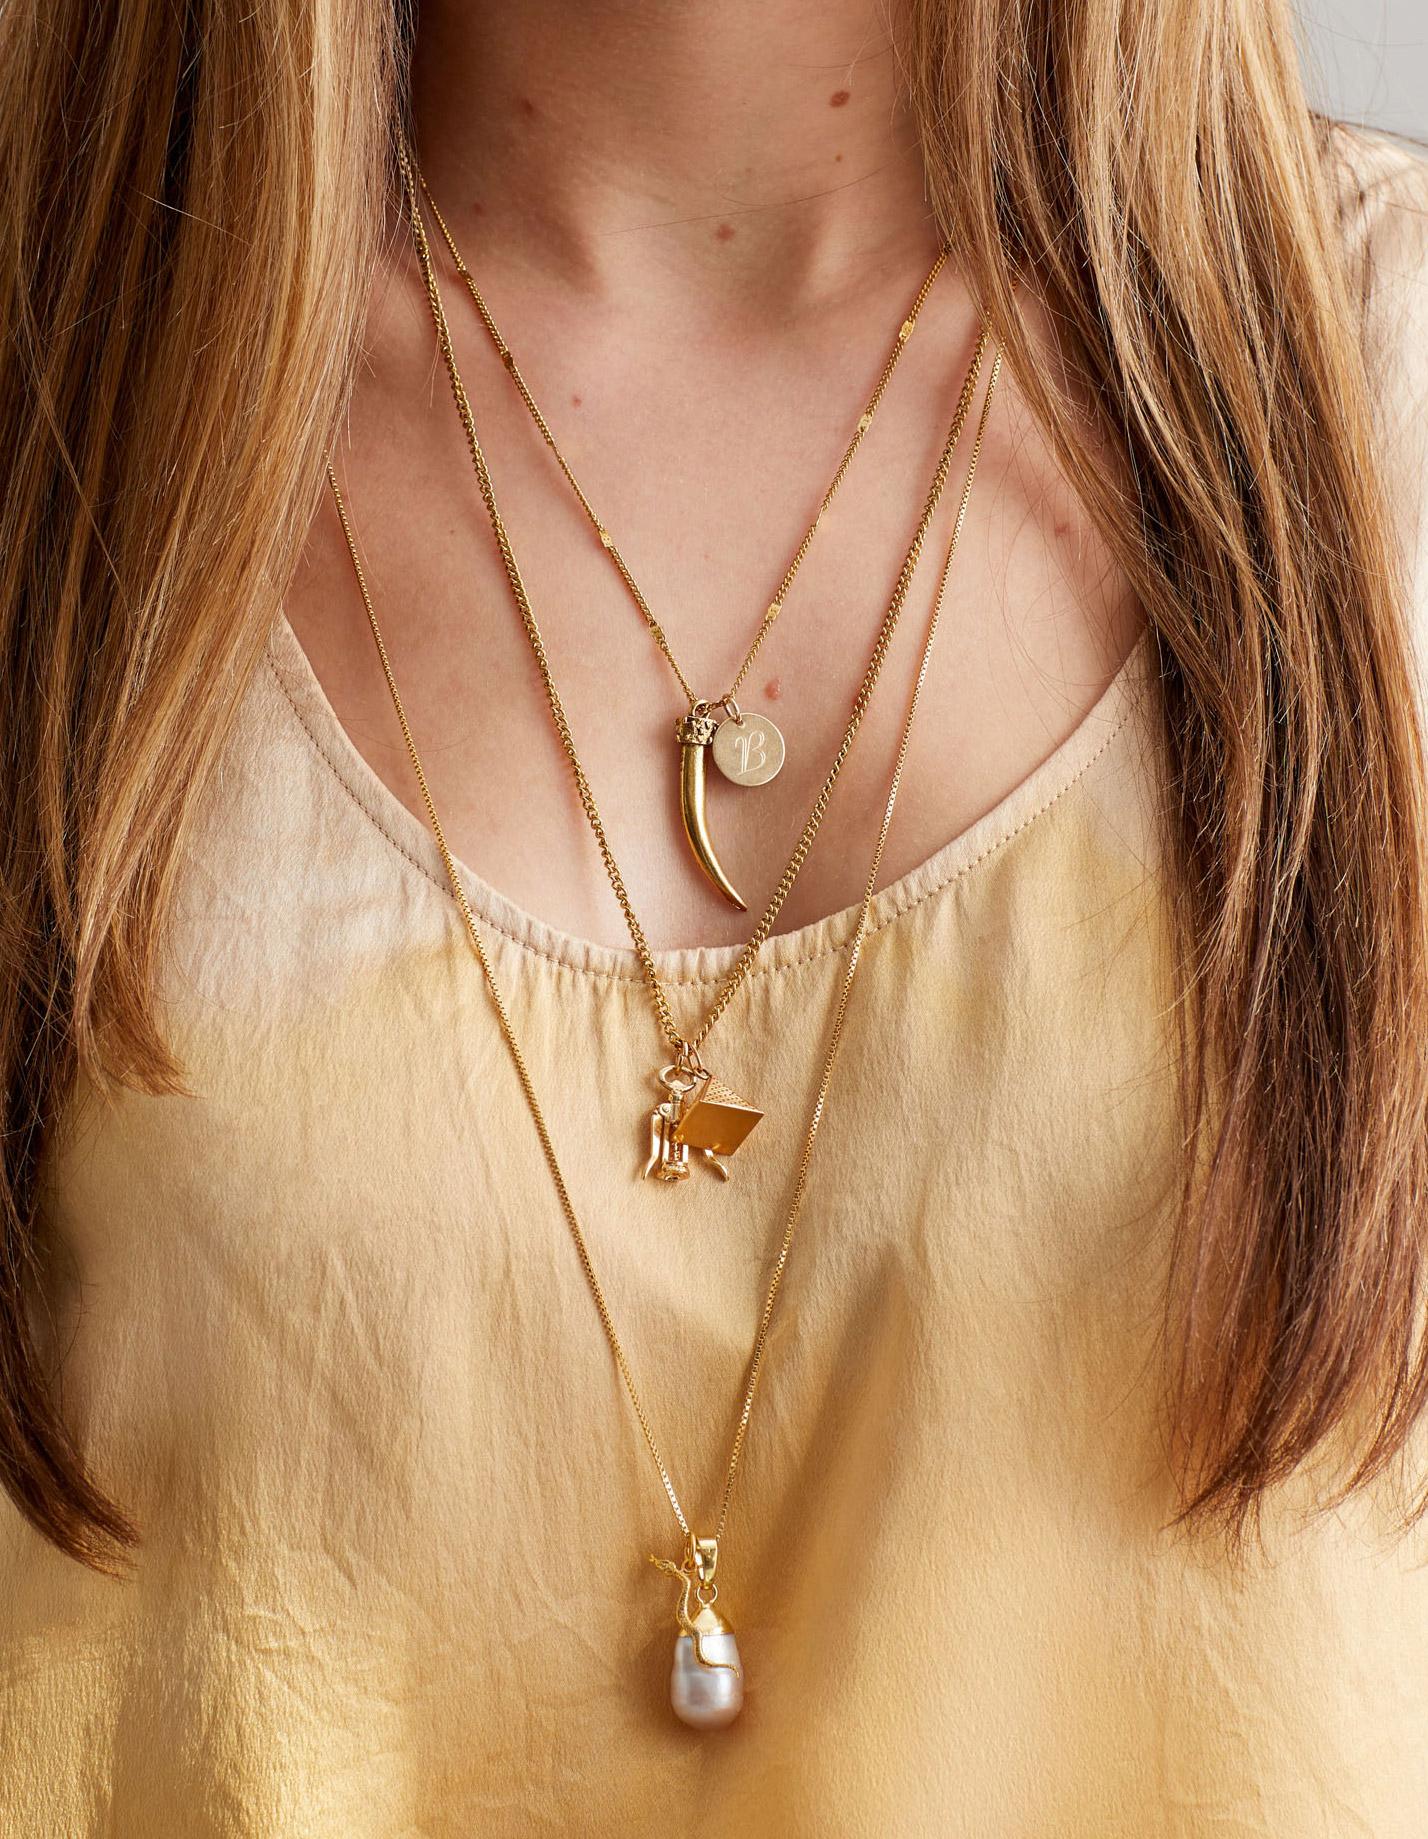 woman wearing three layered necklaces